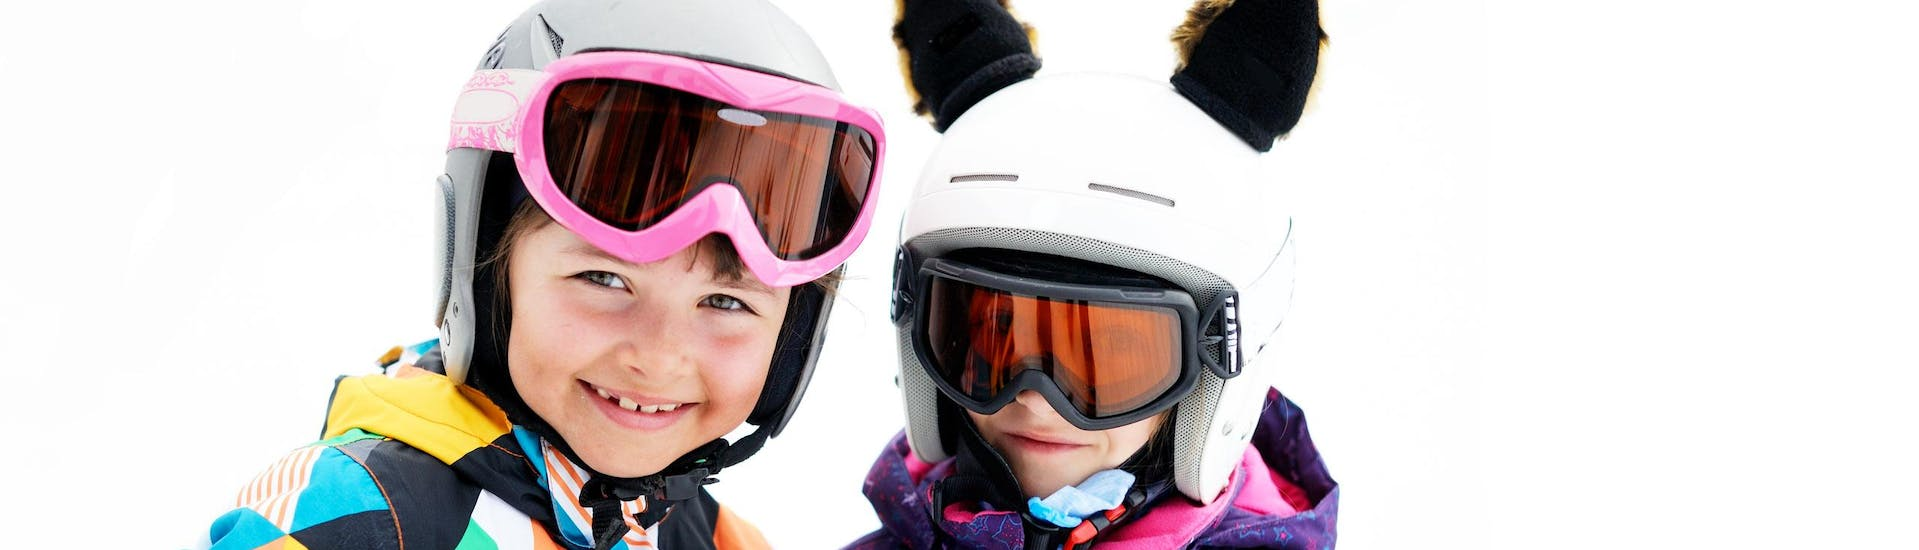 Two young children smiling at the camera during one of the Kids Ski Lessons (5-12 y.) - High Season - Arc 1950 organised by Evolution 2 Spirit - Arc 1950 & Villaroger.